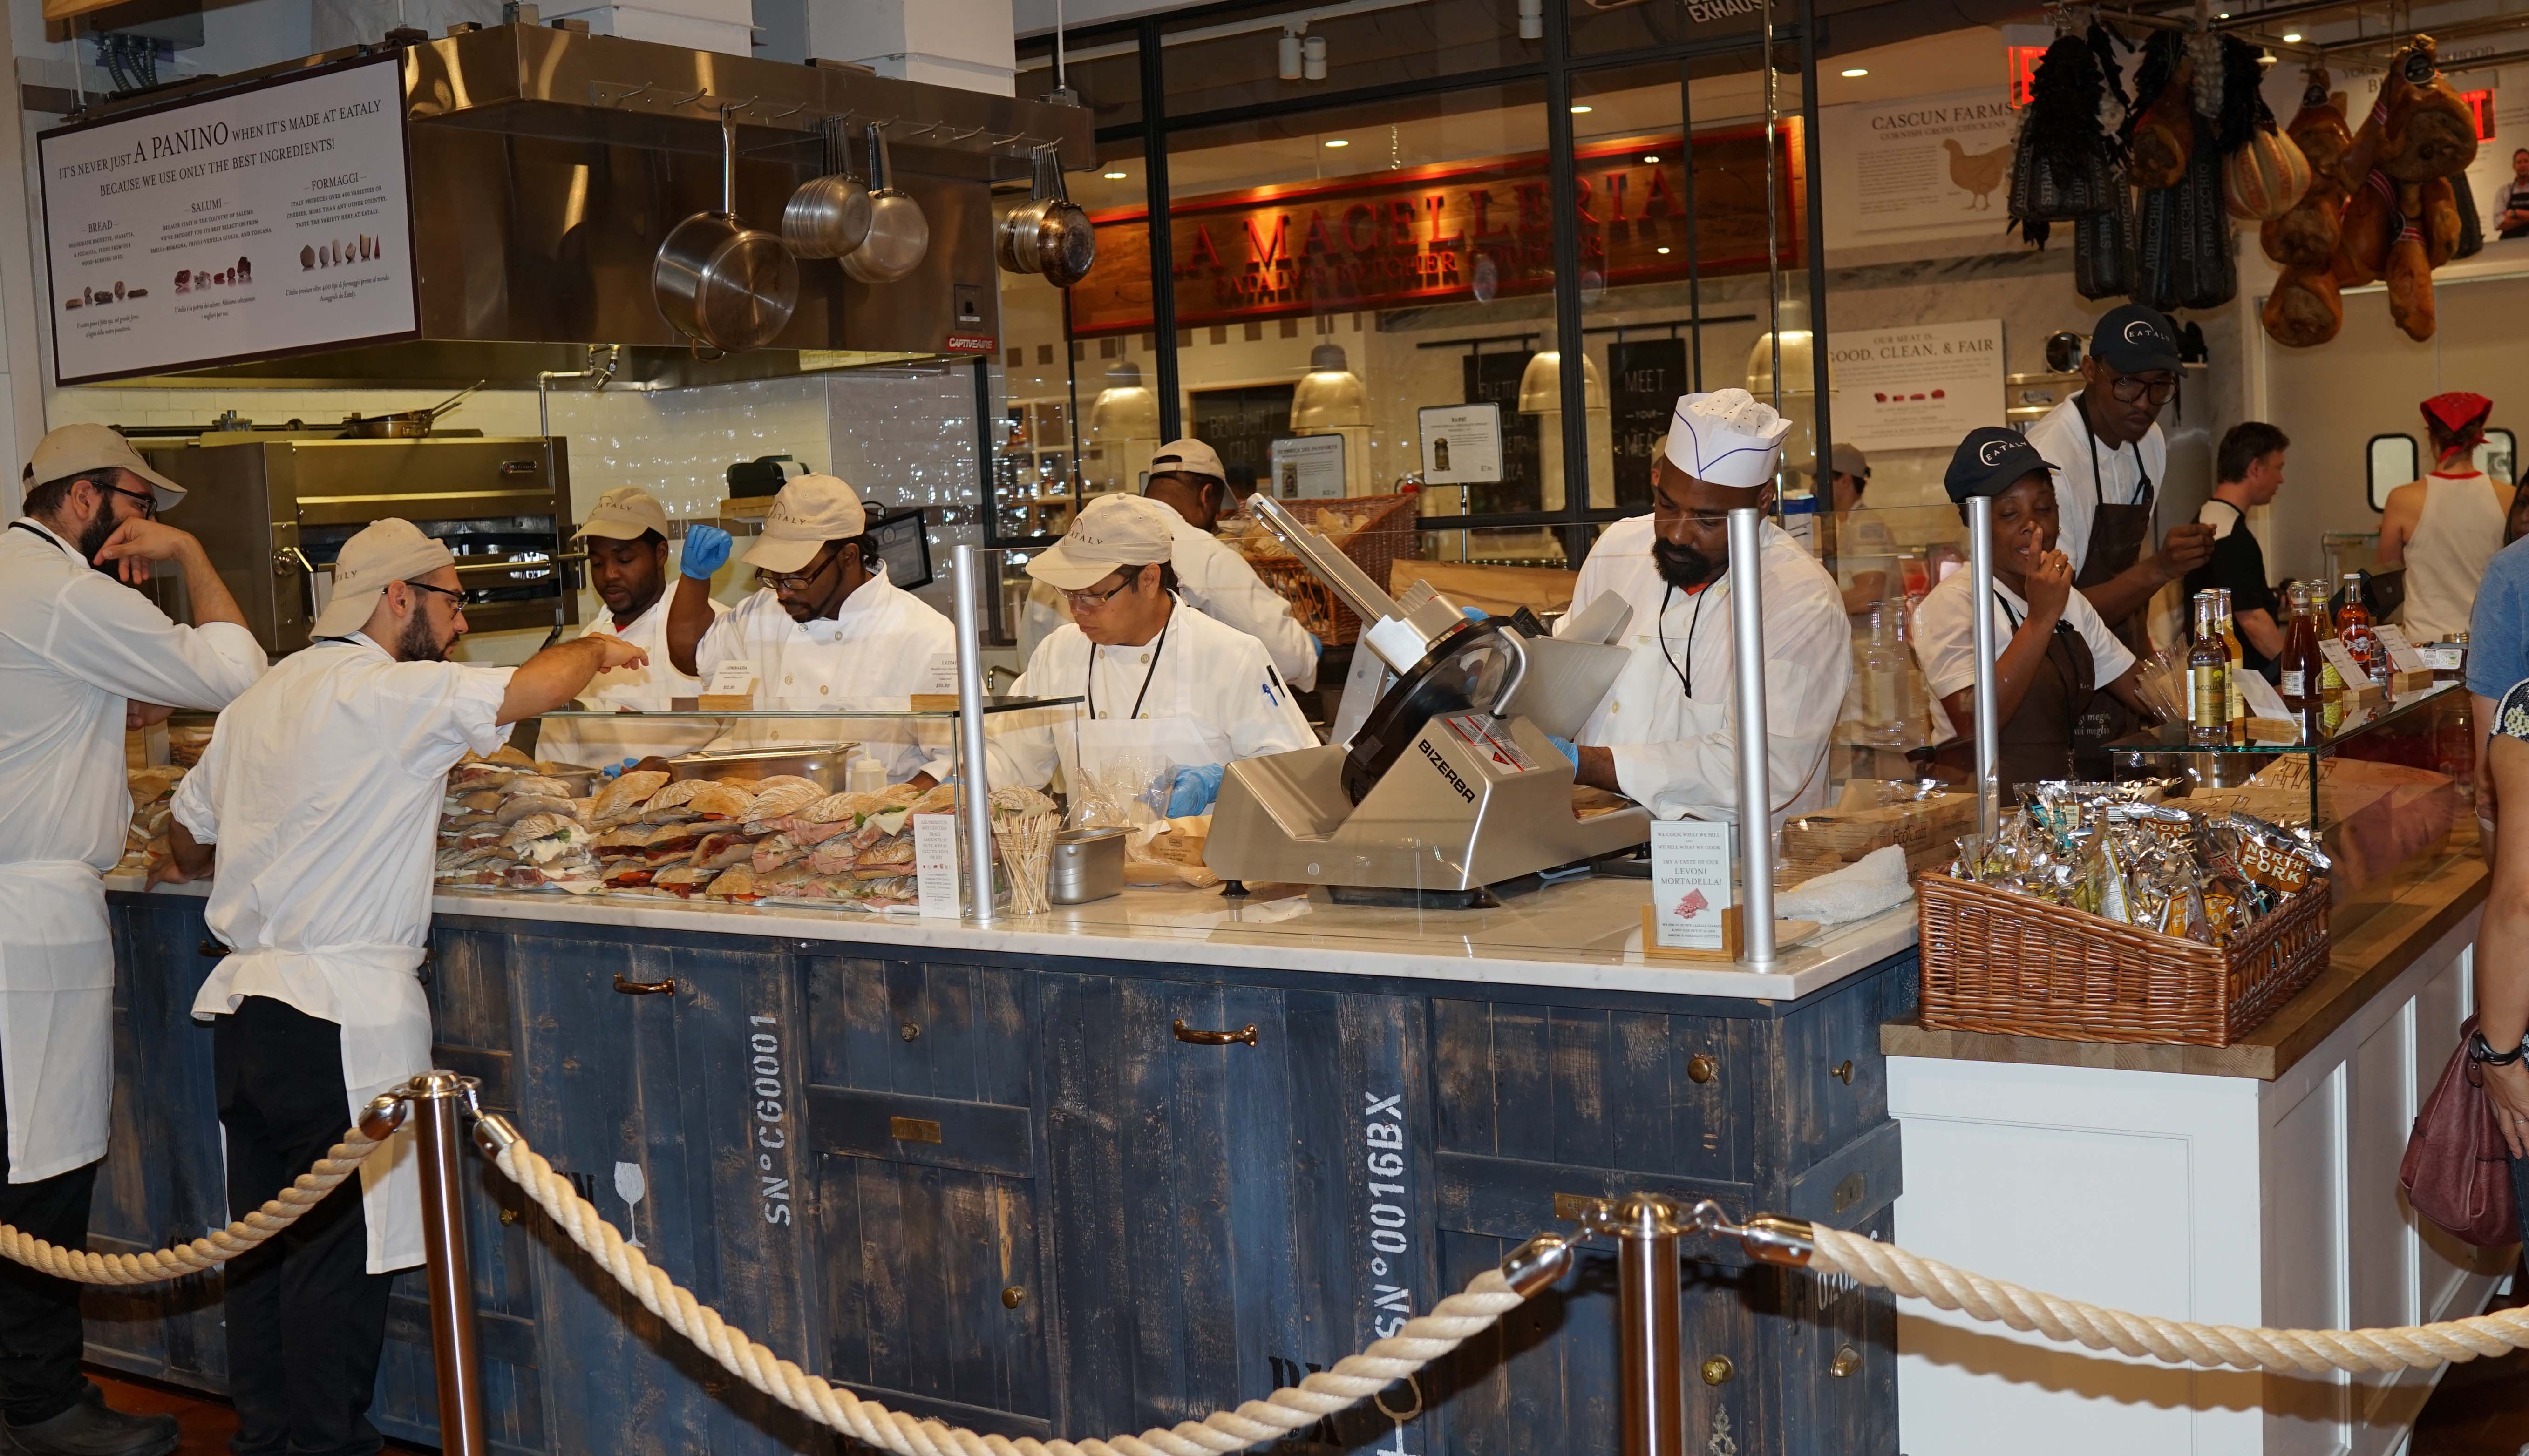 Eataly sandwich section